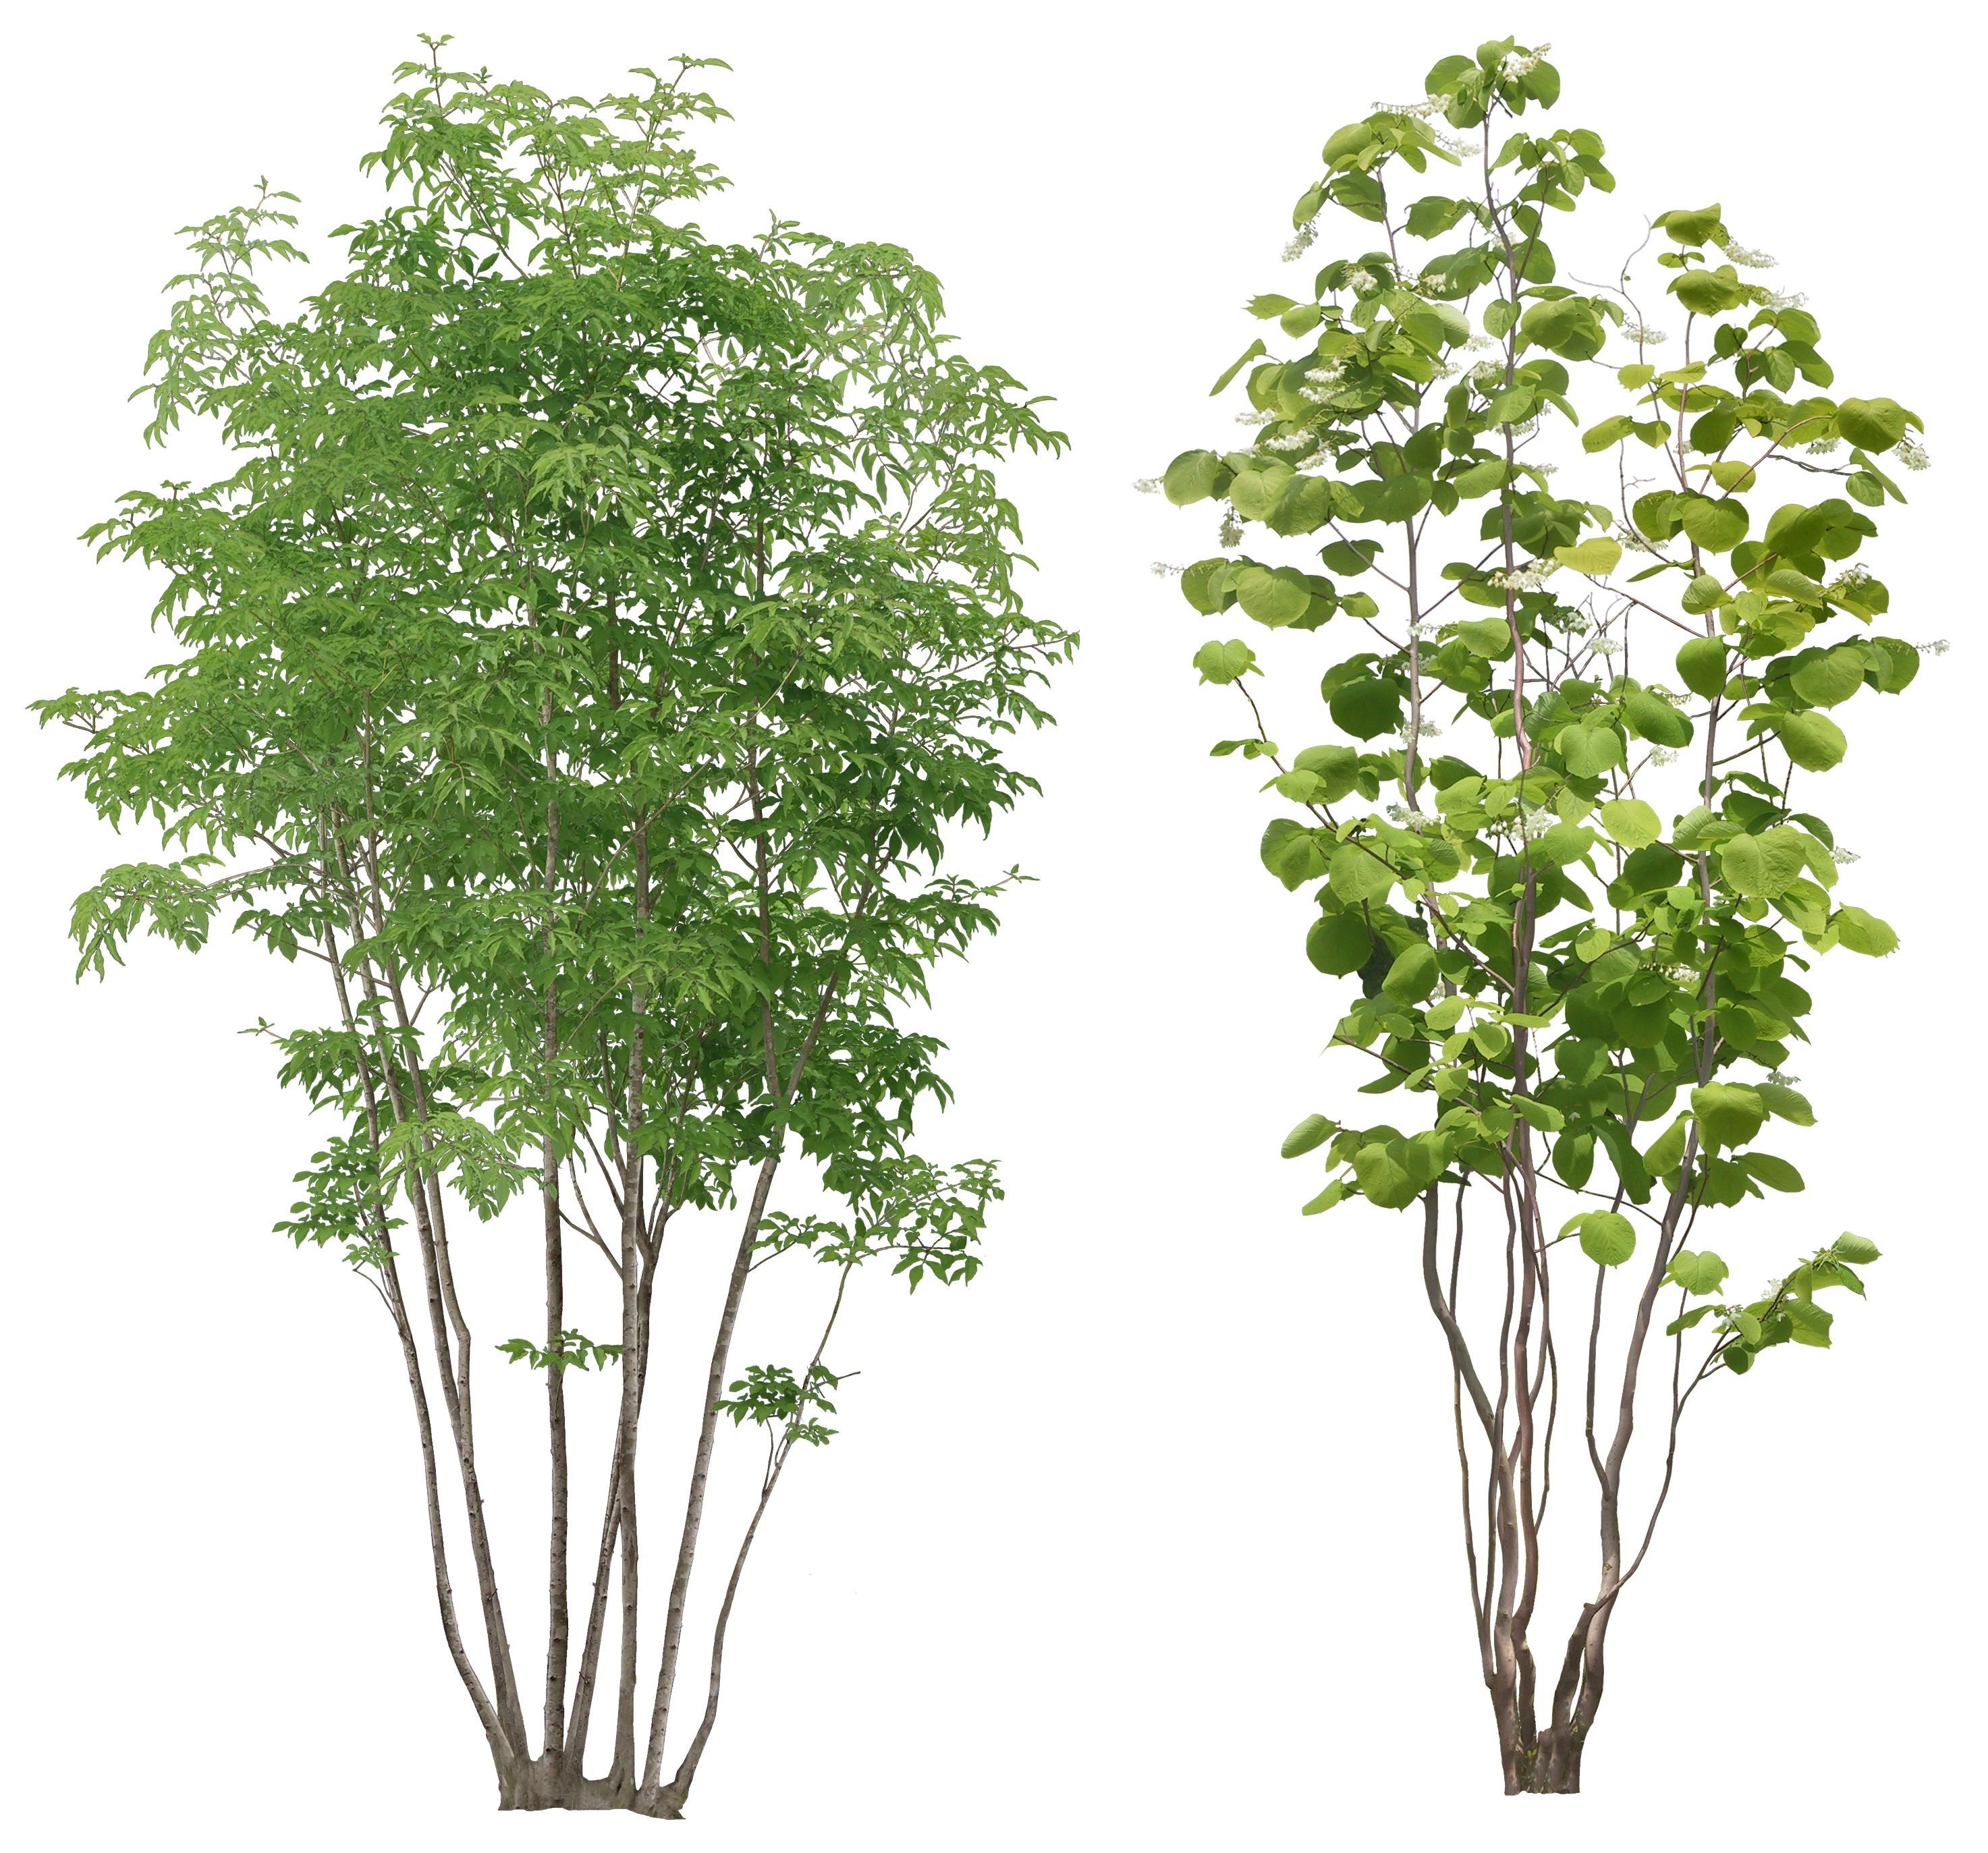 Tree image purepng free. Forest trees png clipart transparent download